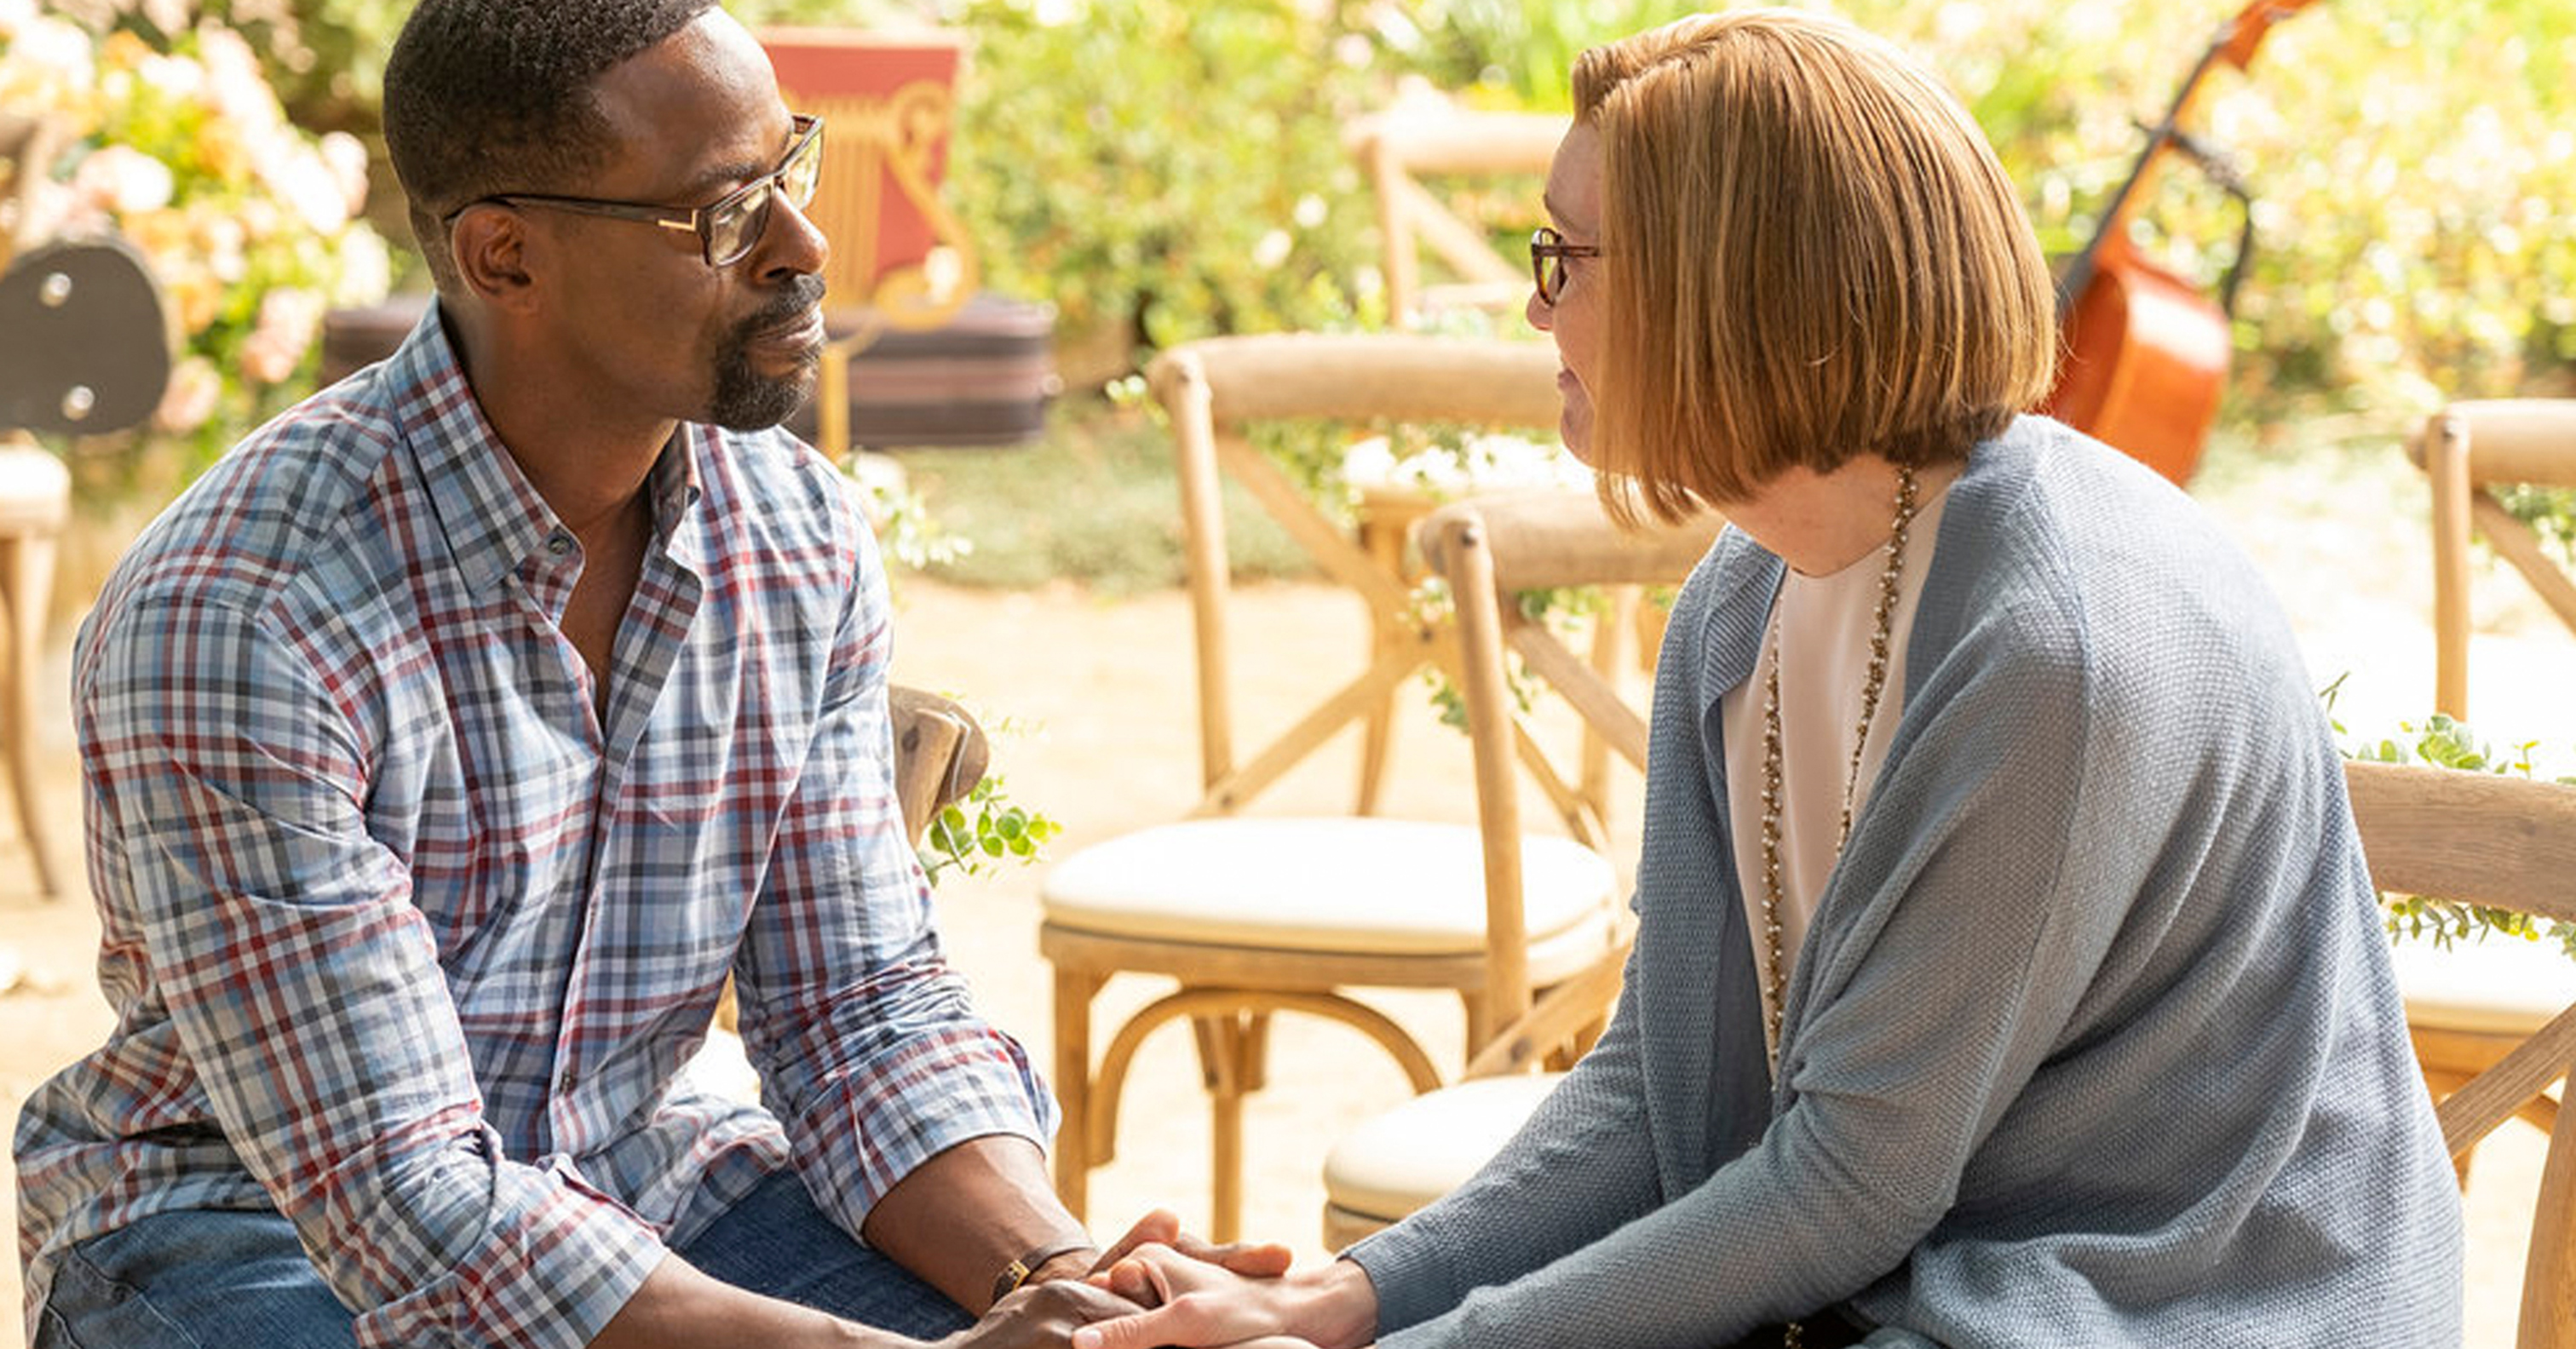 This Is Us_main study image